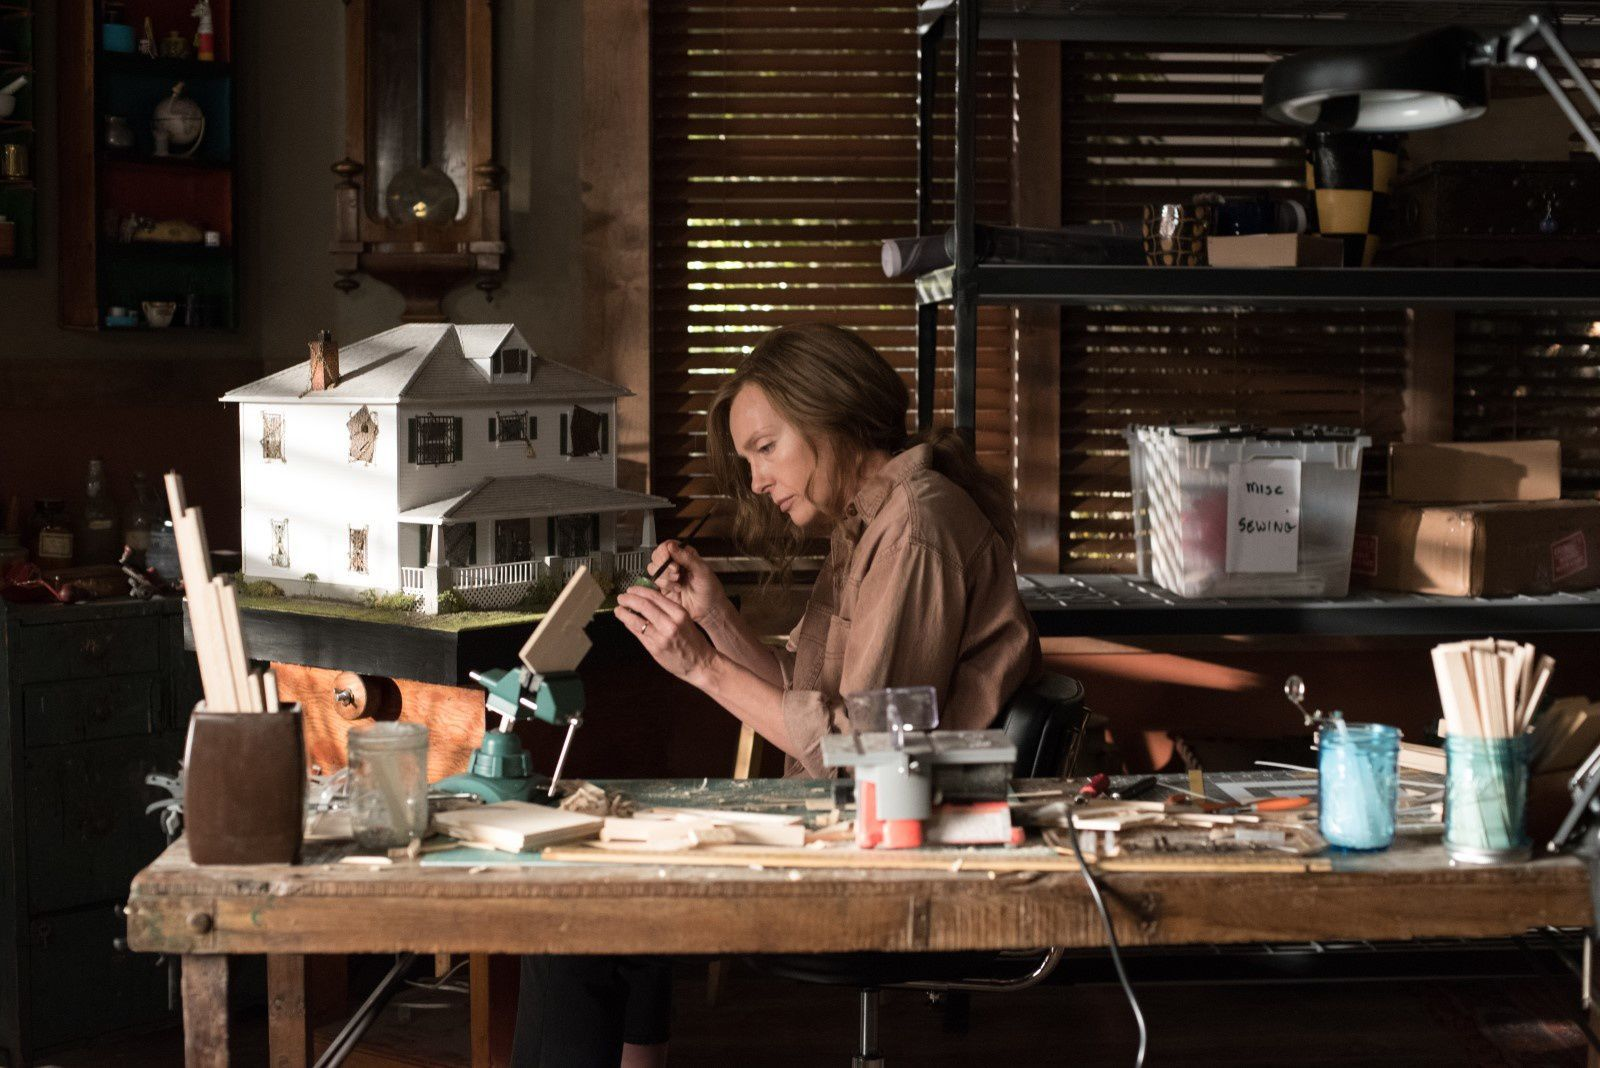 HEREDITE | Critique qui ne cache pas de secret